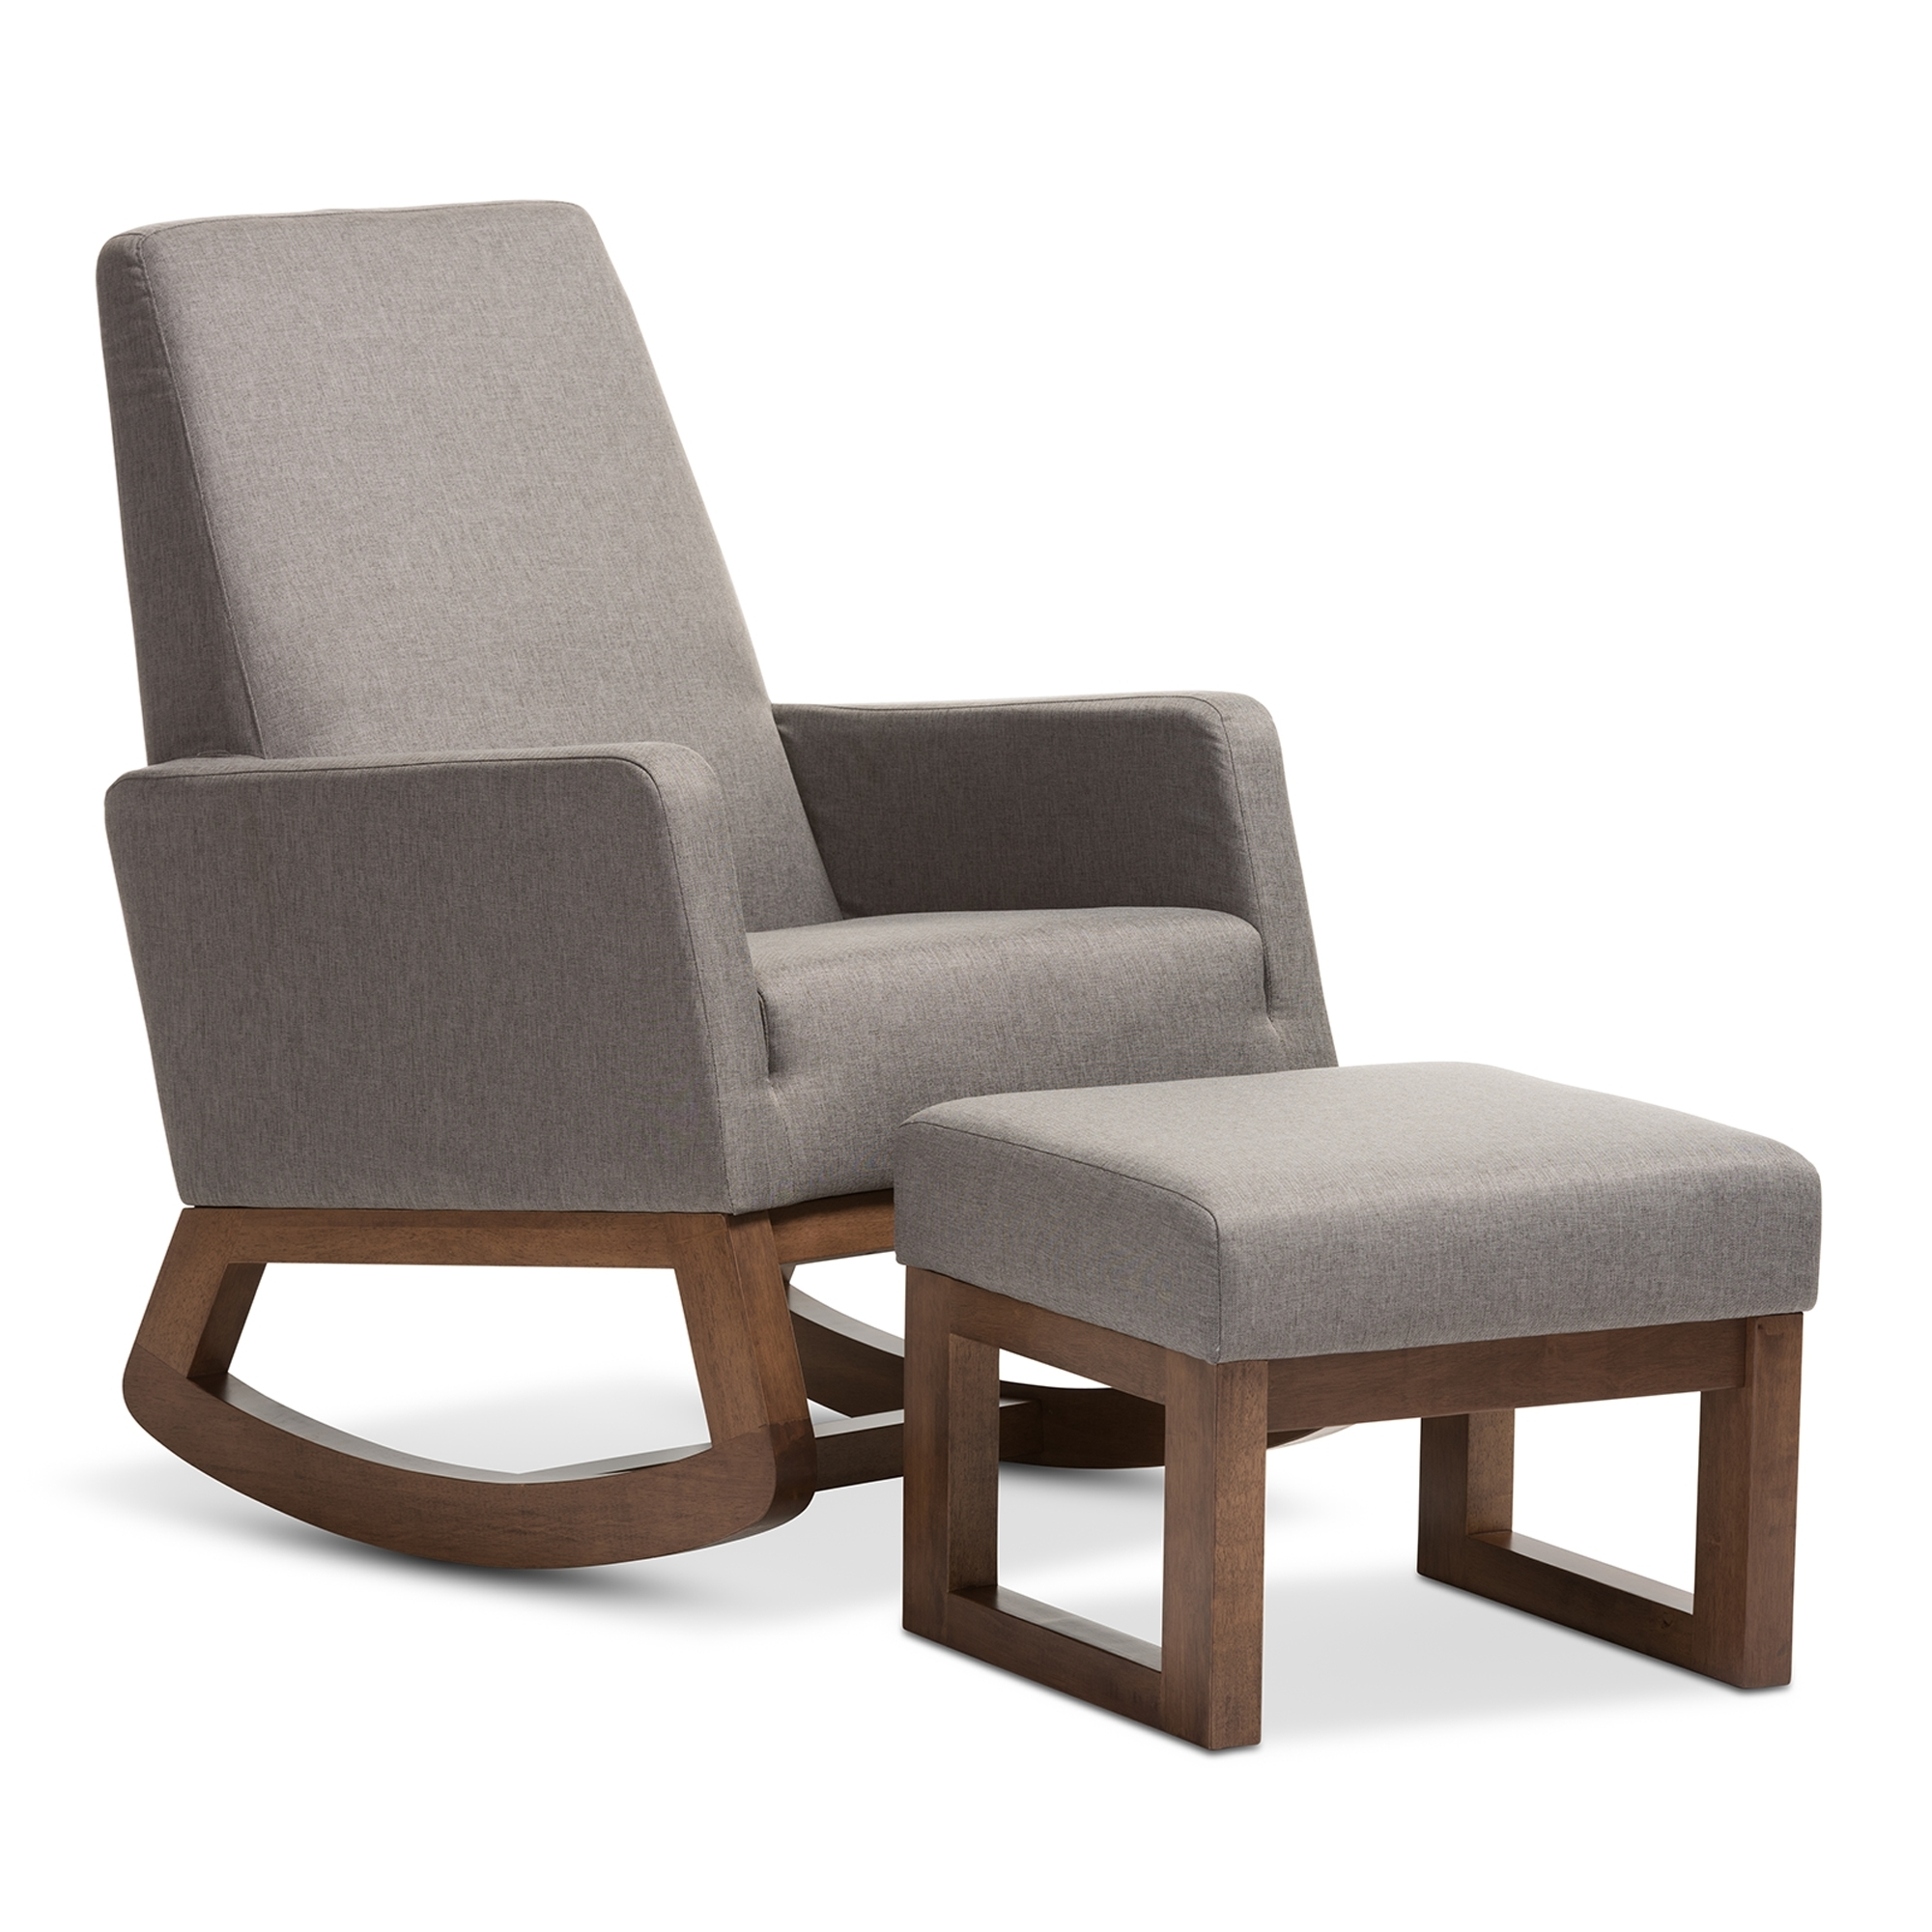 Patio Rocker Chairs 15 Collection Of Patio Rocking Chairs With Ottoman